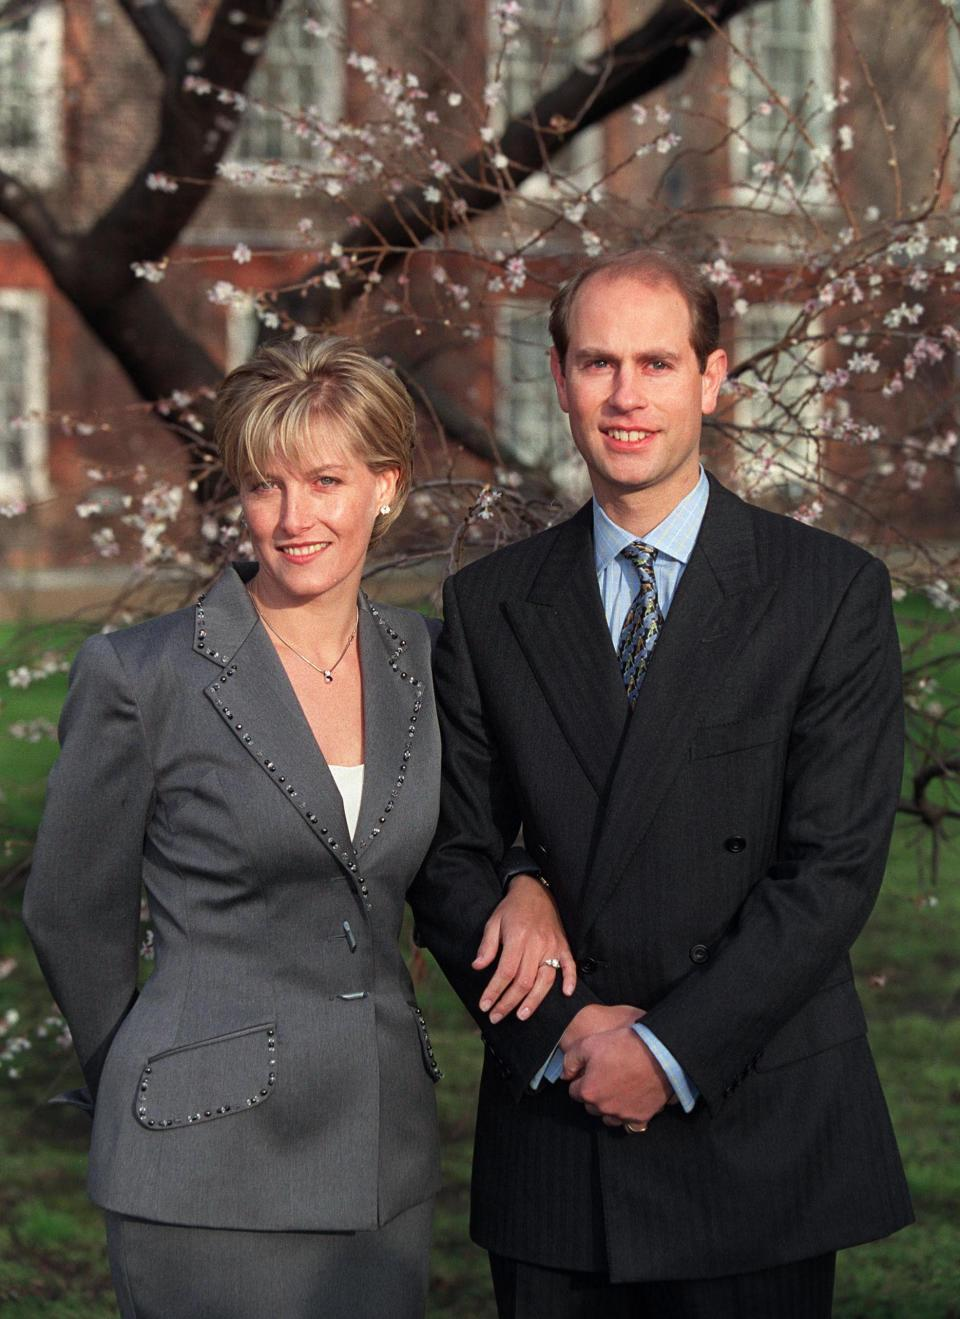 <p>Prince Edward met Sophie Rhys-Jones back in 1993 at a tennis event.<br><br>They became engaged on 6 January 1999 after the young royal proposed with a two-carat oval ring which features two heart-shaped gemstones.<br><br>The ring was made by Asprey and Garrard and reportedly cost £105,000 at the time. <em>[Photo: Getty]</em> </p>